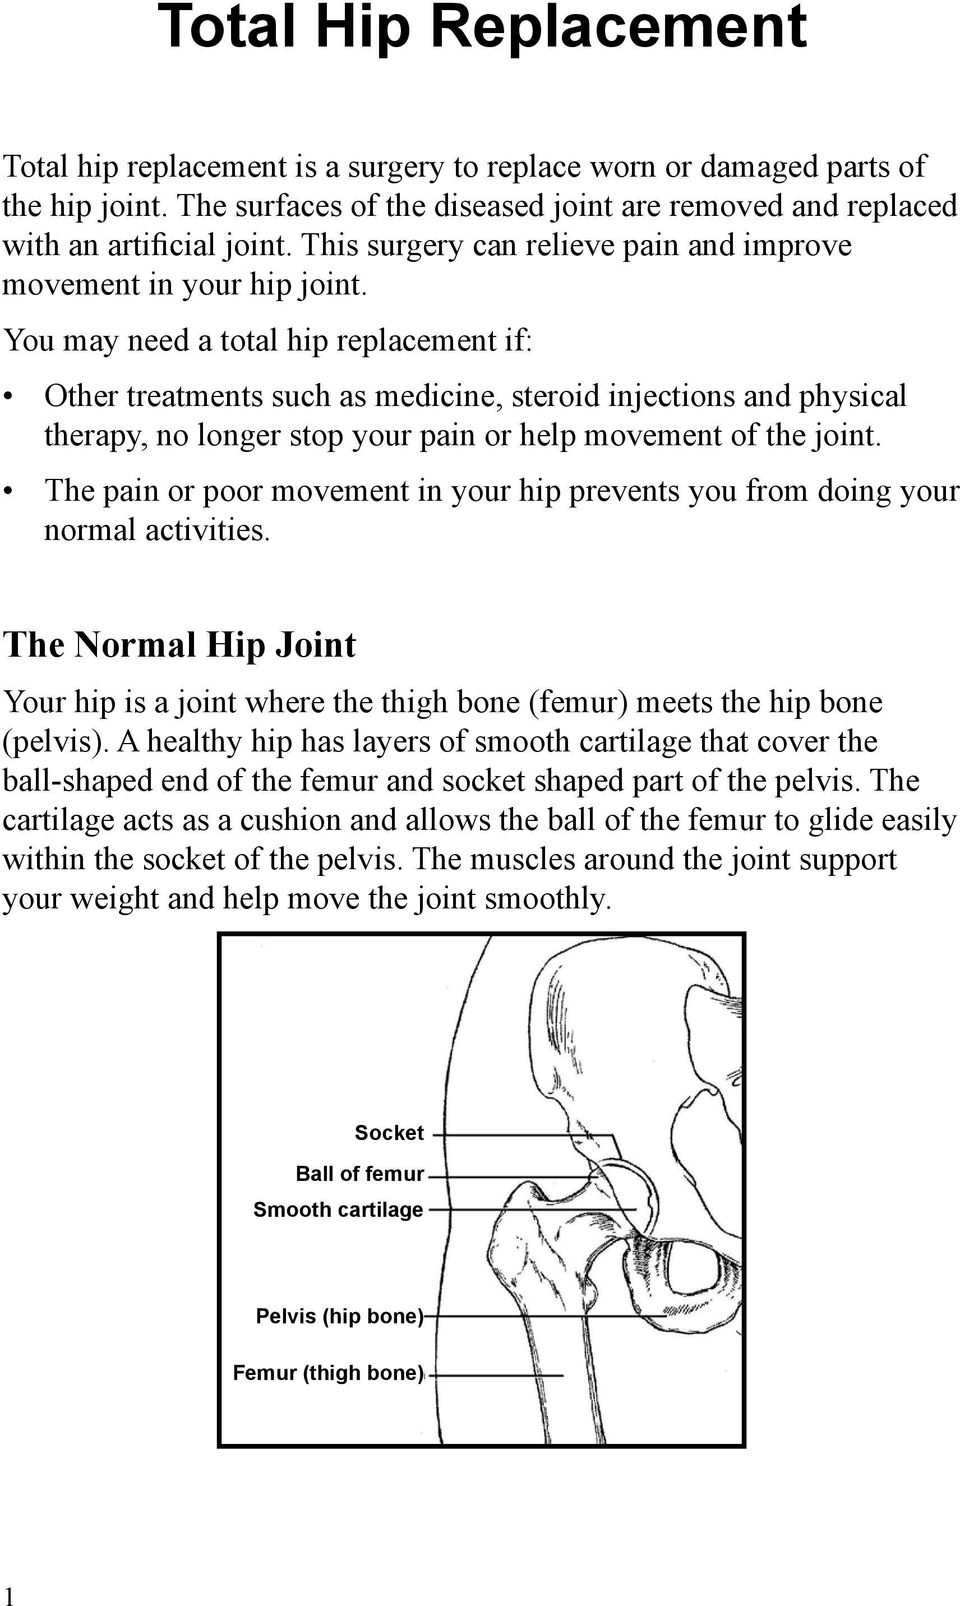 You may need a total hip replacement if: Other treatments such as medicine, steroid injections and physical therapy, no longer stop your pain or help movement of the joint.